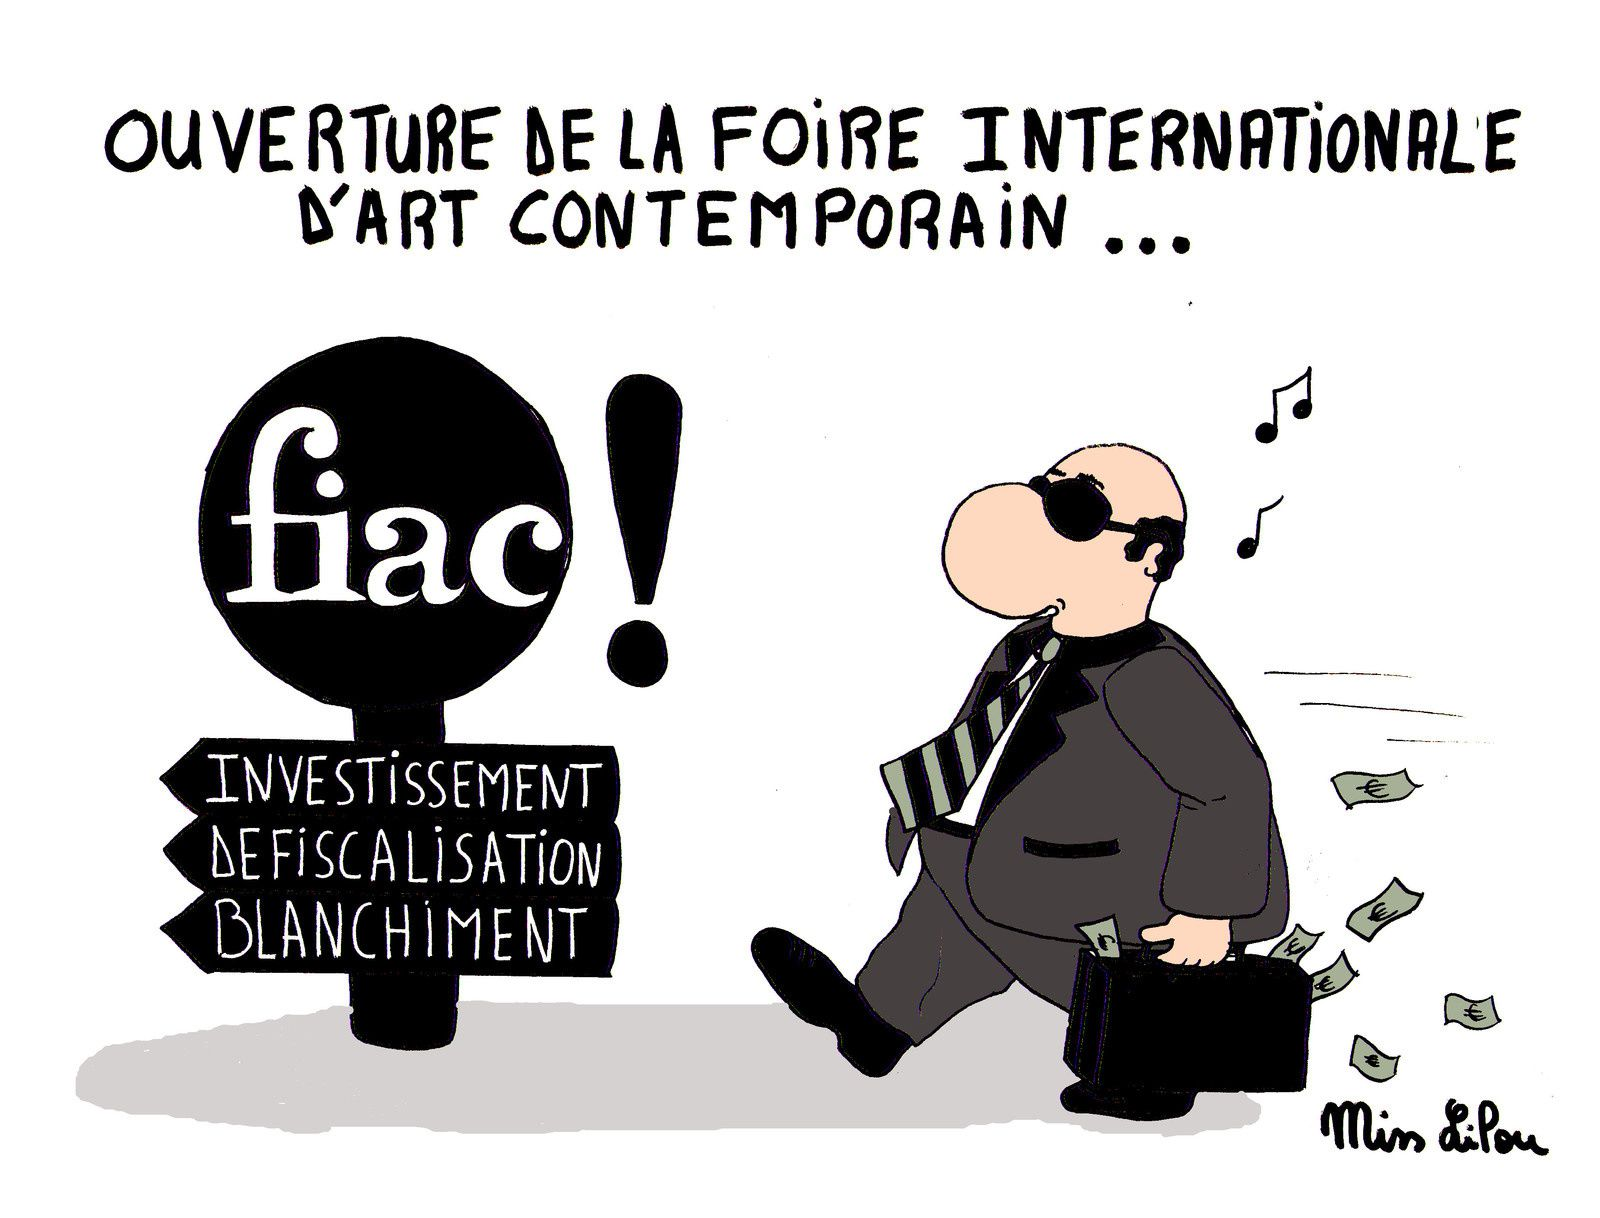 FIAC : Foire Internationale d'Art Contemporain...